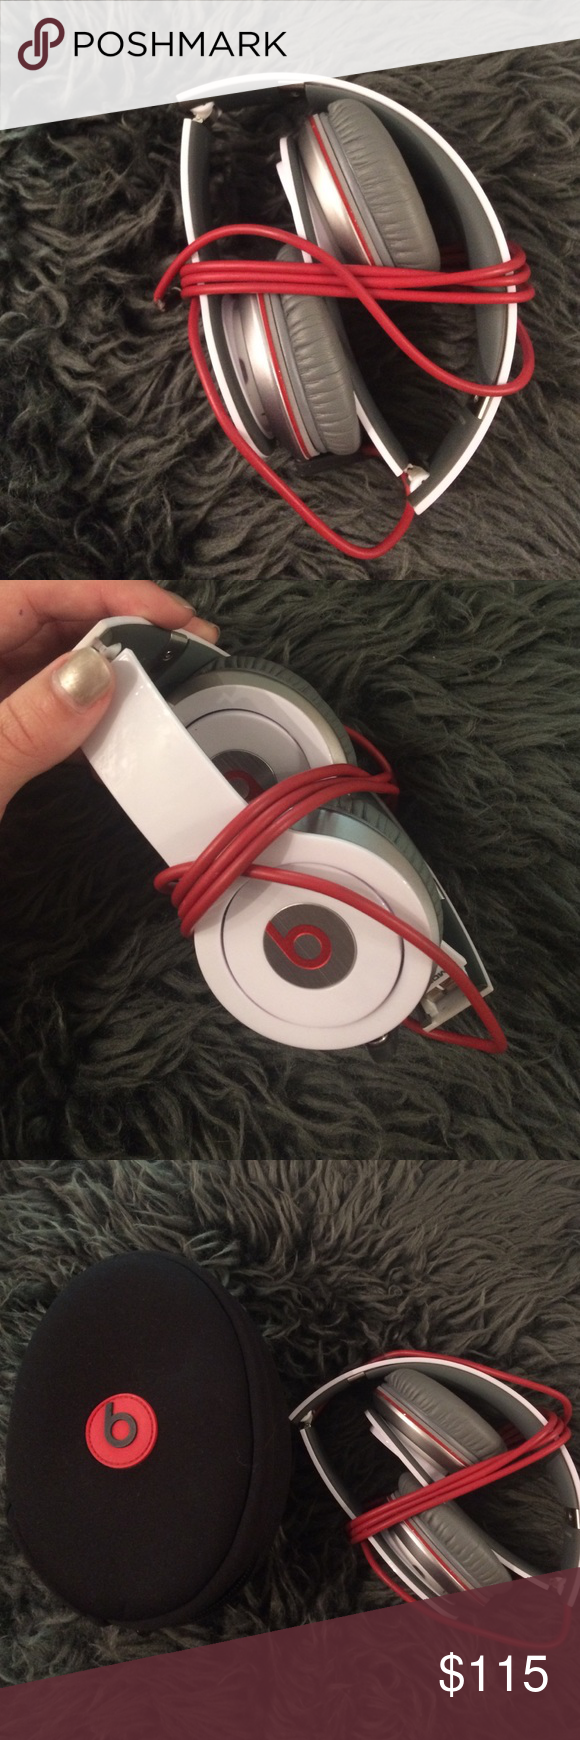 Beats White beats with original case Other